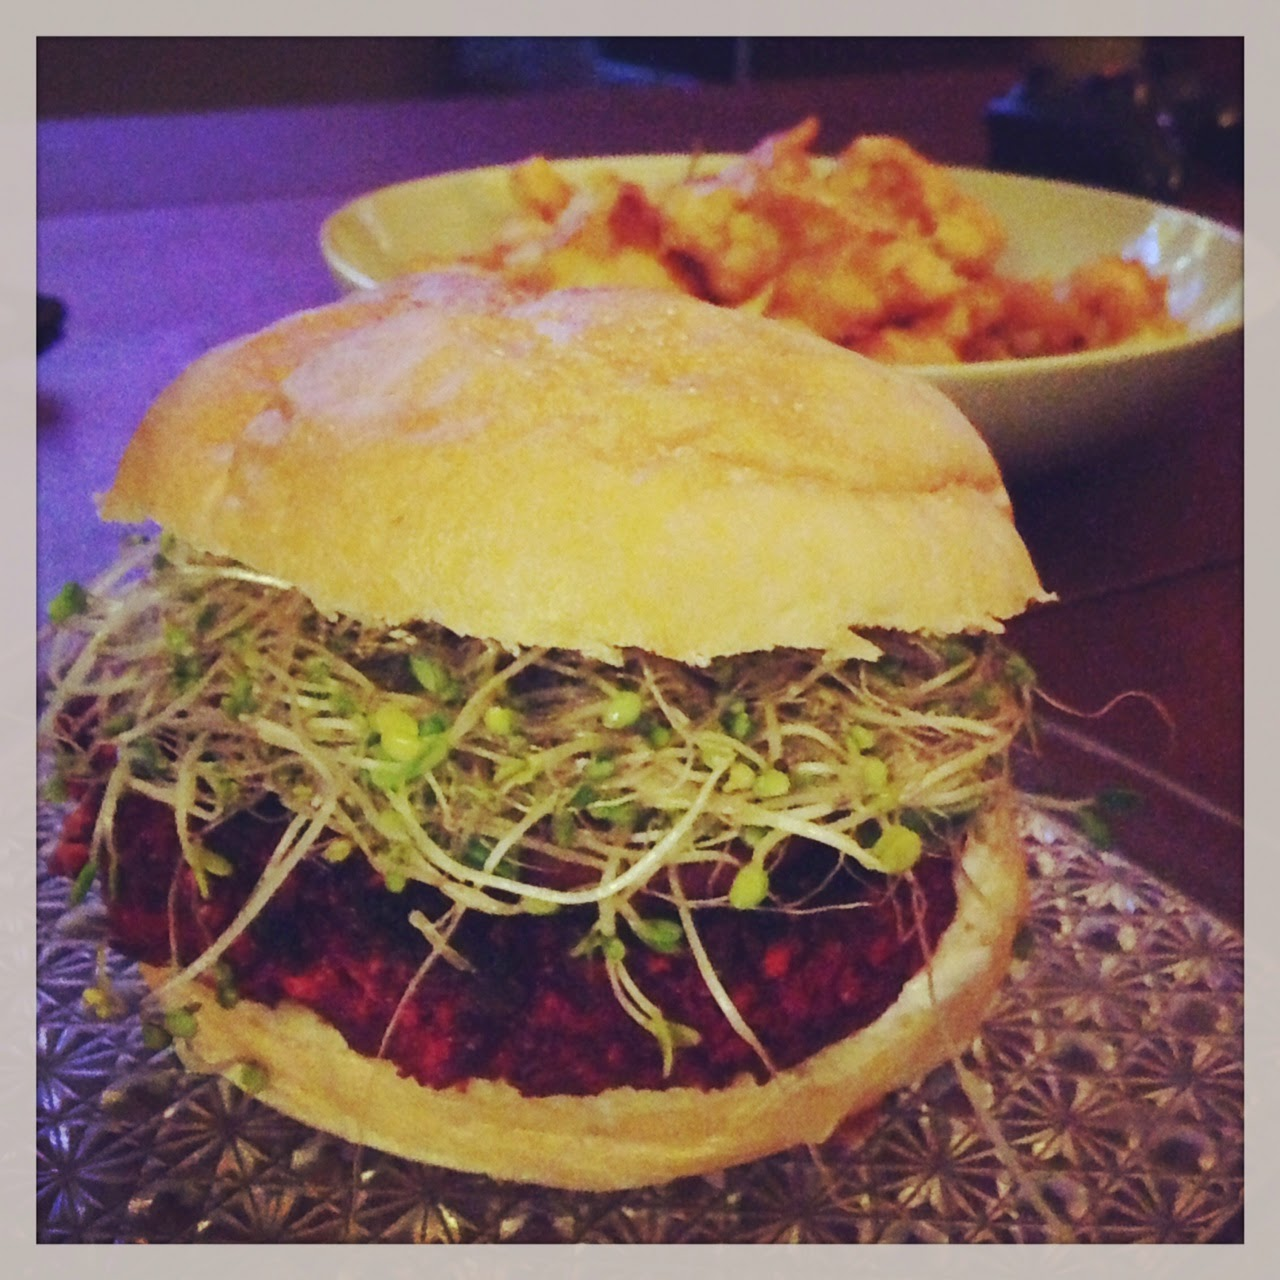 Beet burger - vegan